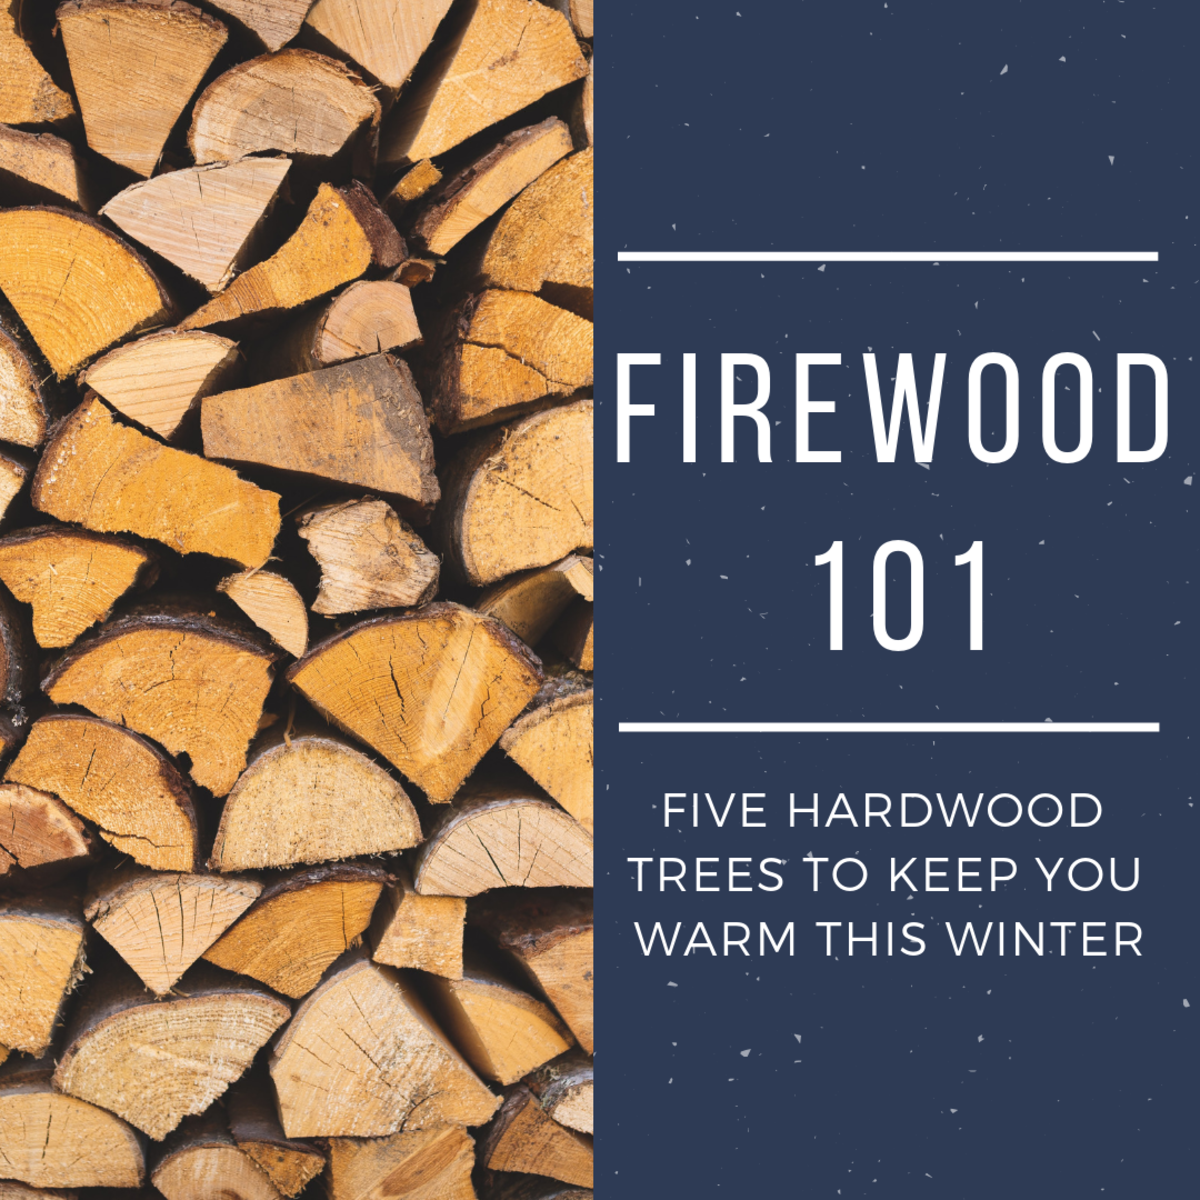 Best Types of Hardwood Trees to Use for Firewood: Oak, Cherry, Sassafras, Locust, and Ash